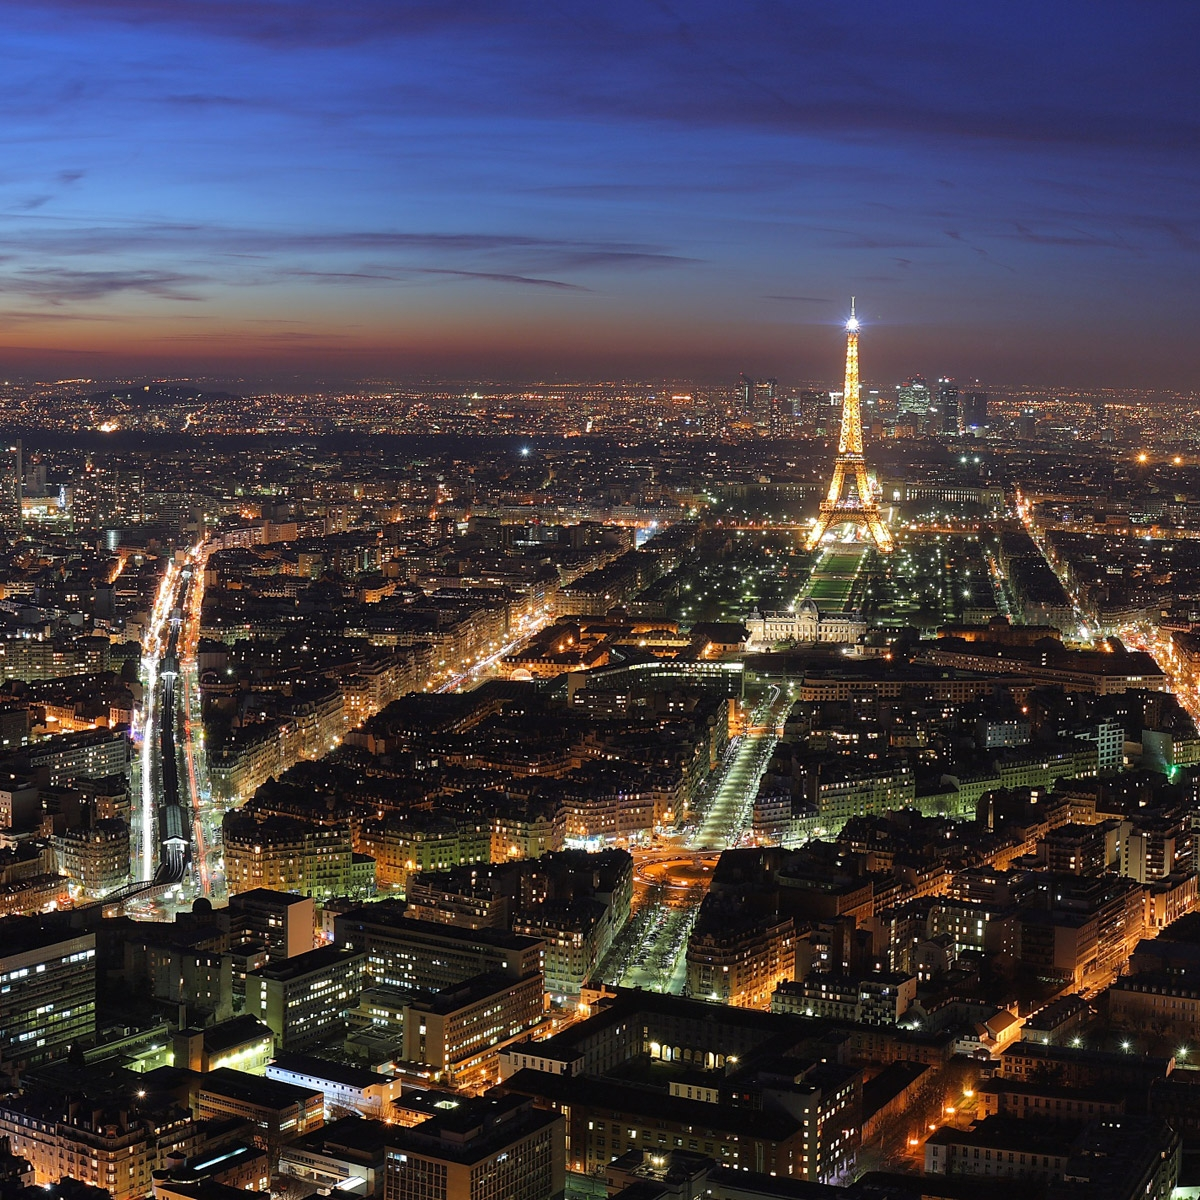 Paris skyline at night, including the Eiffel Tower.